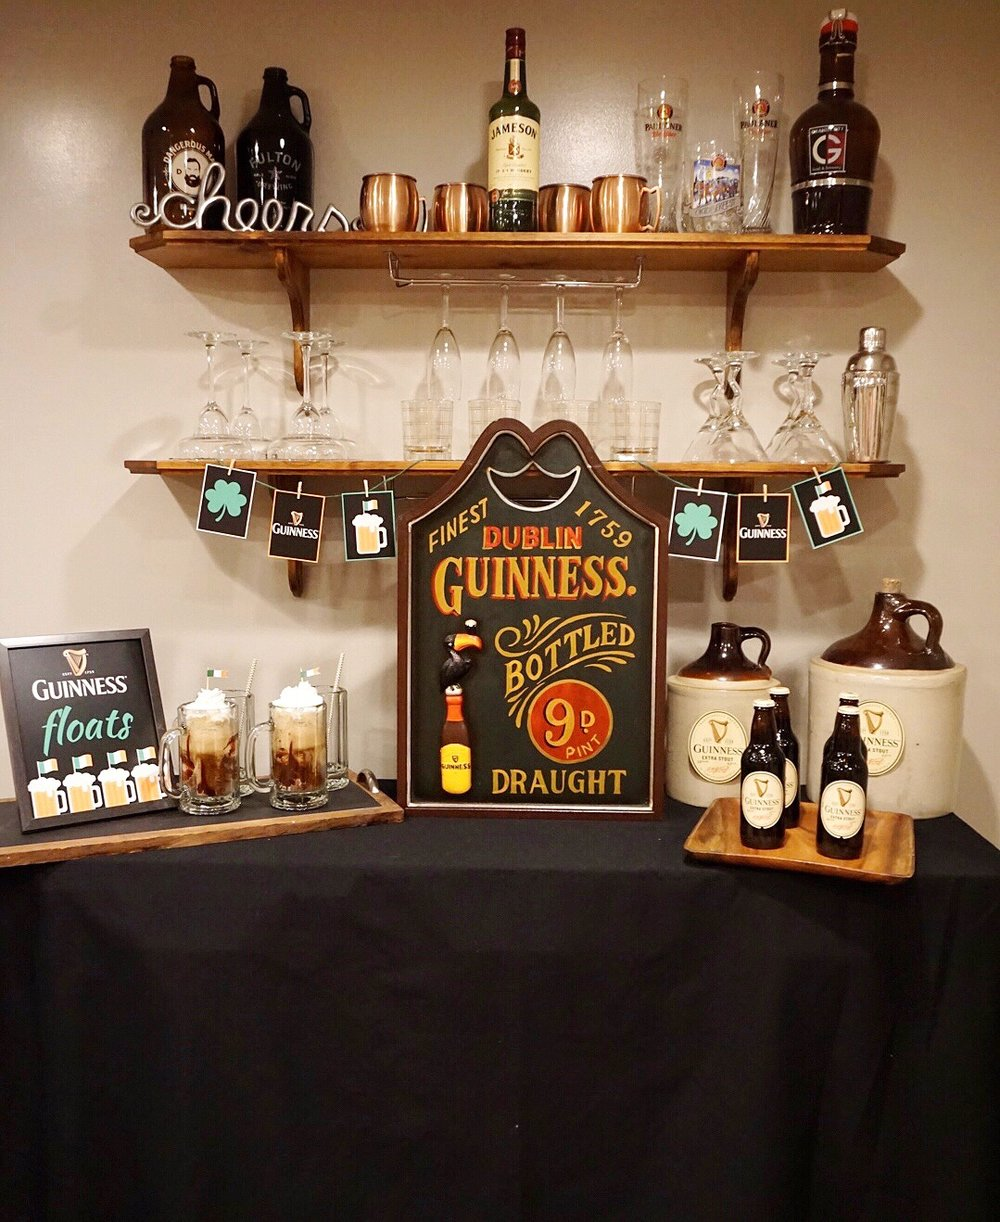 Guinness bar for St. Patrick's Day party.